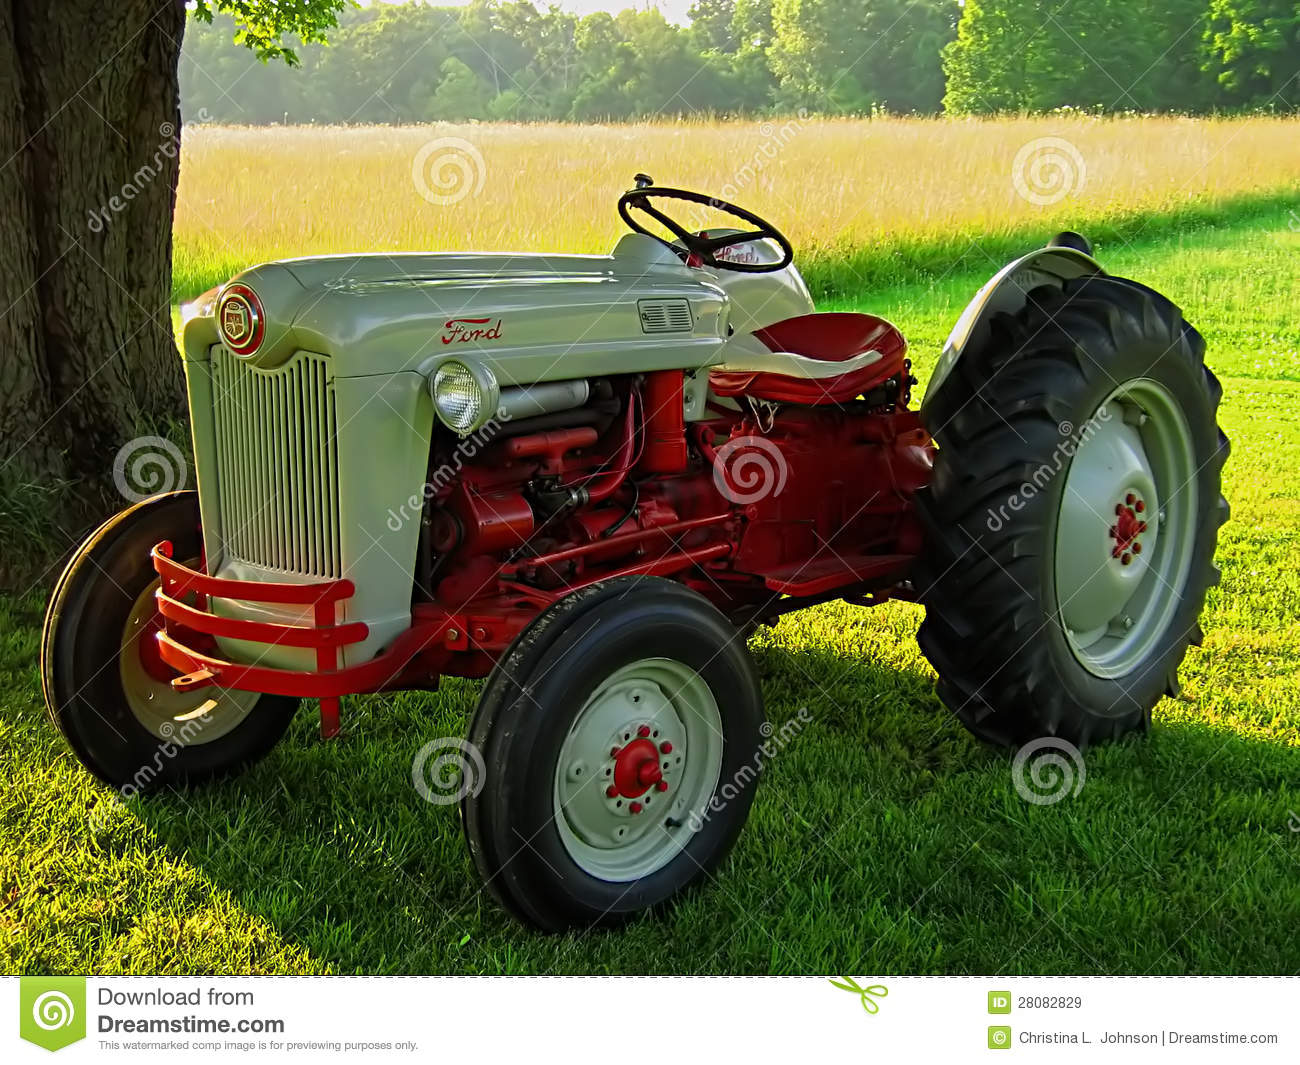 Ford Tractor Identification : Antique ford tractor editorial stock image